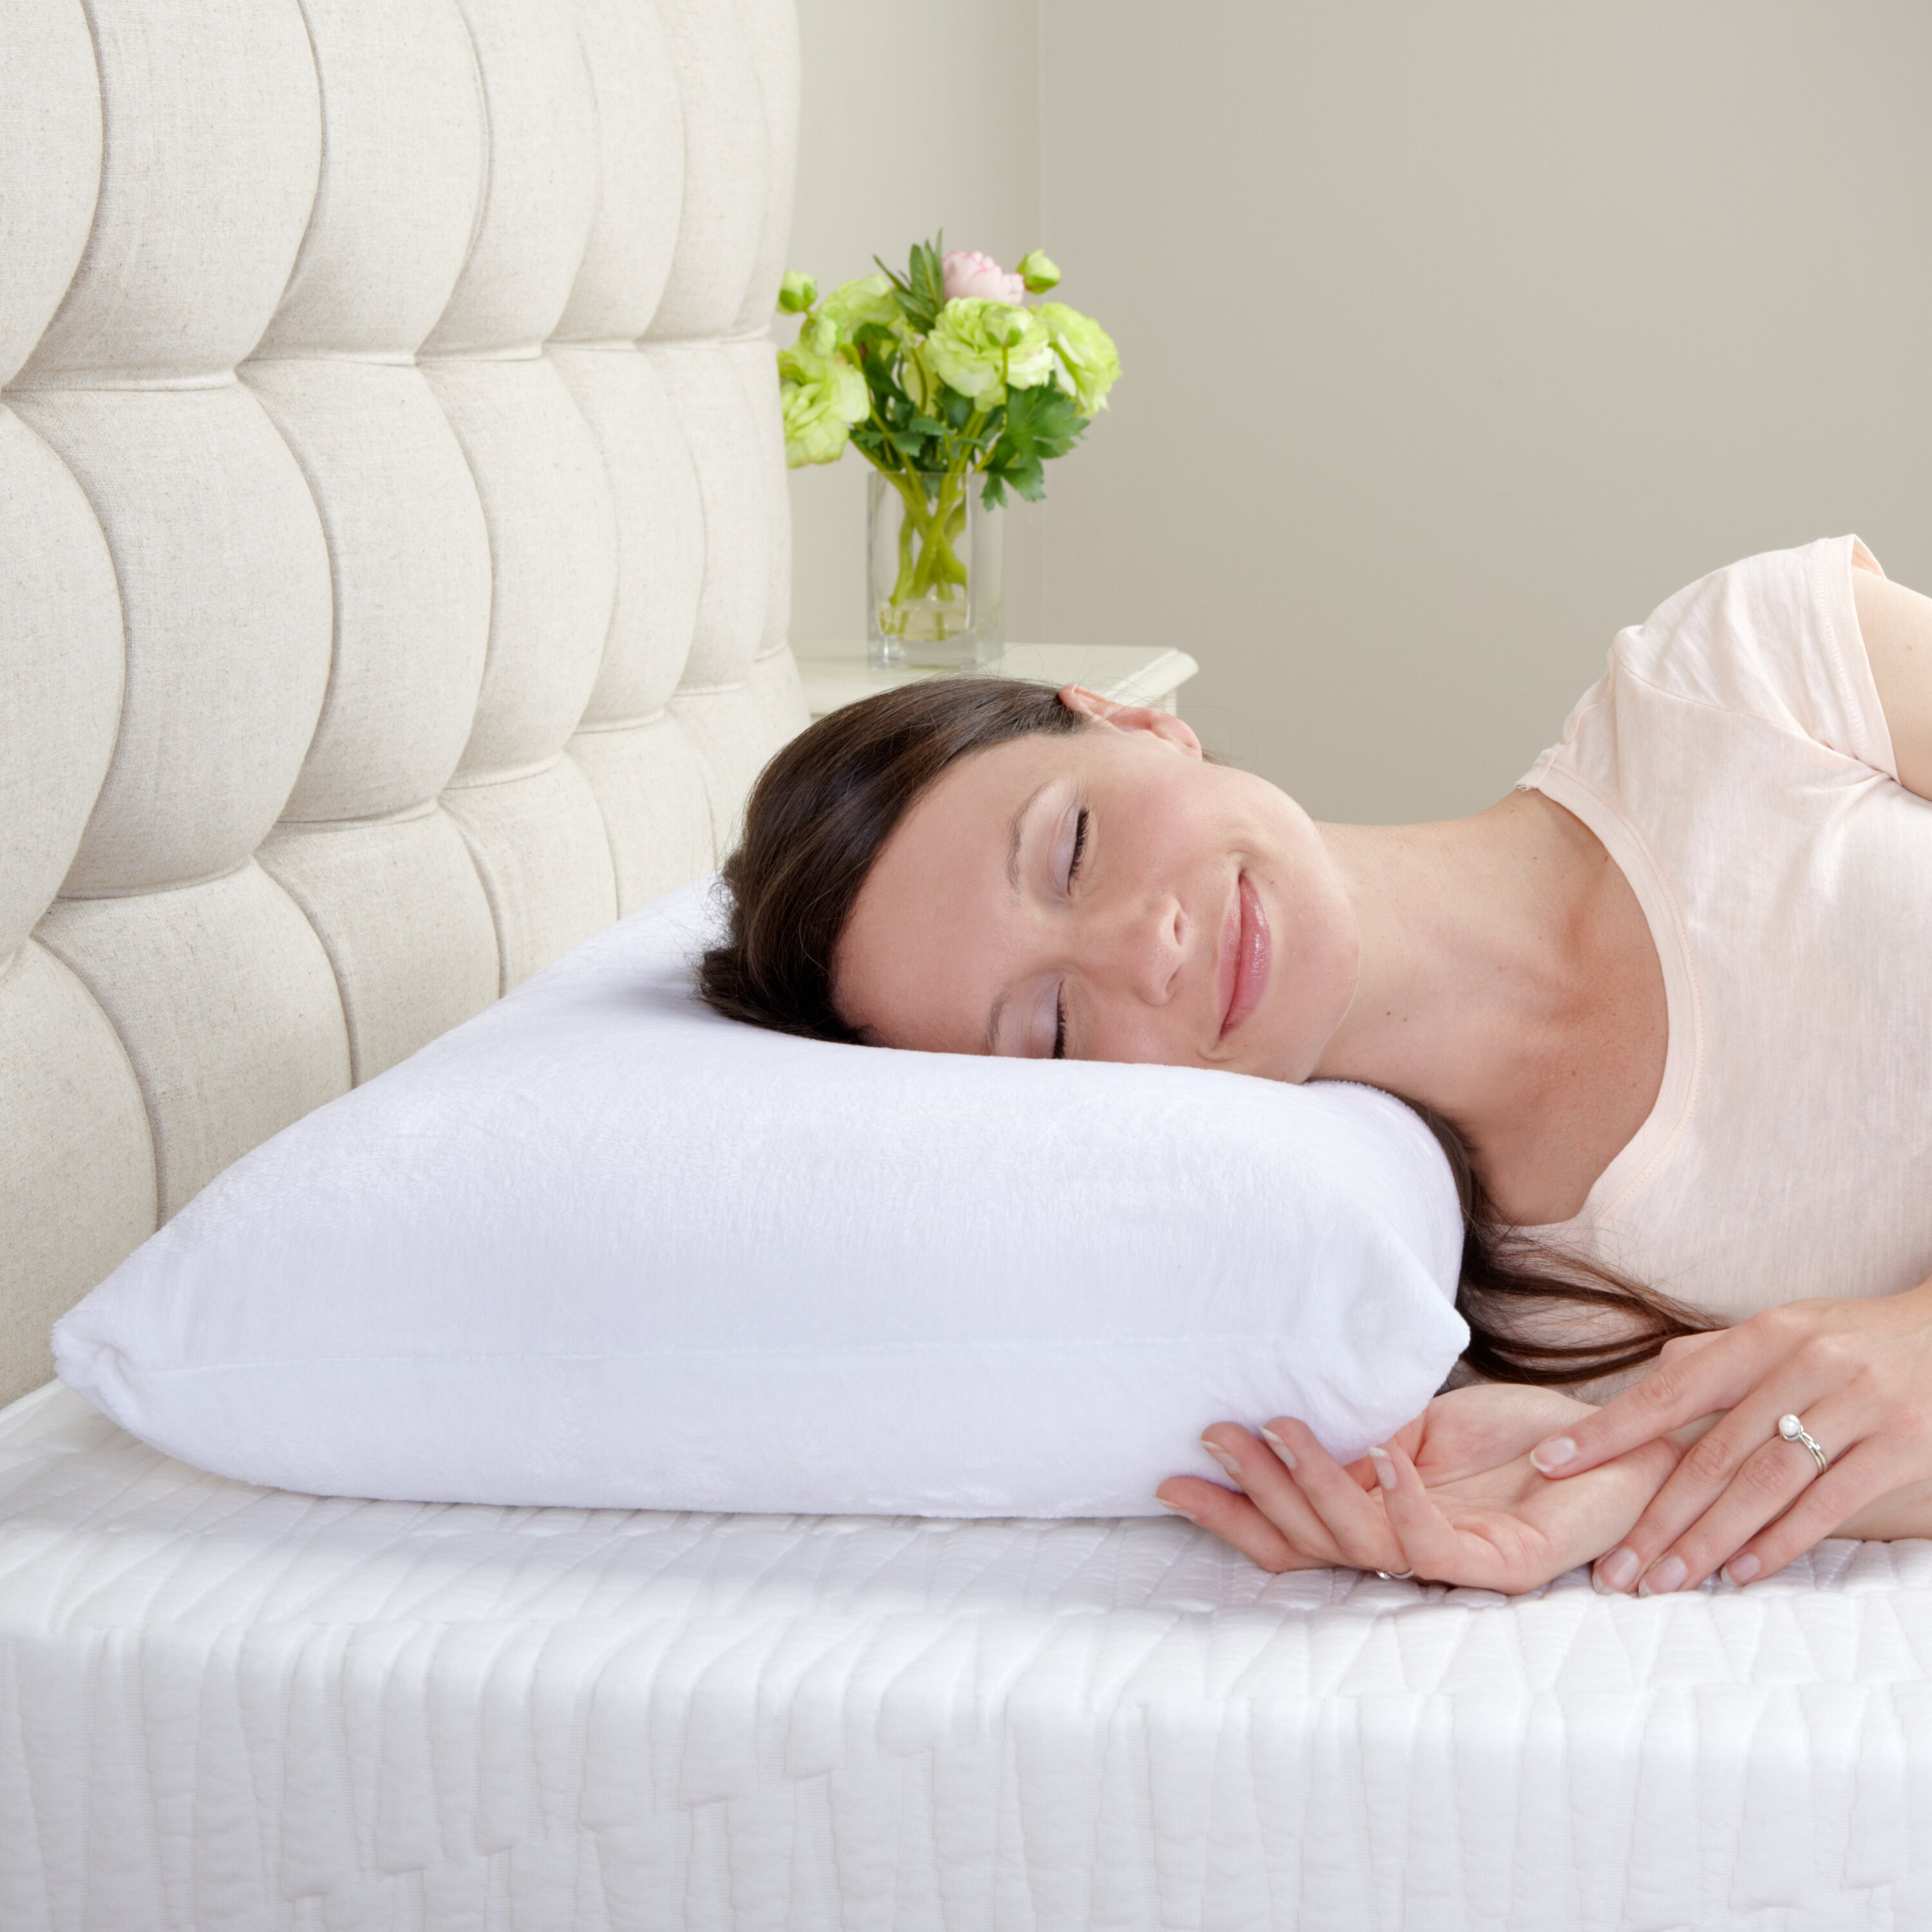 Classic Brands Conforma Memory Foam Queen Pillow Amp Reviews